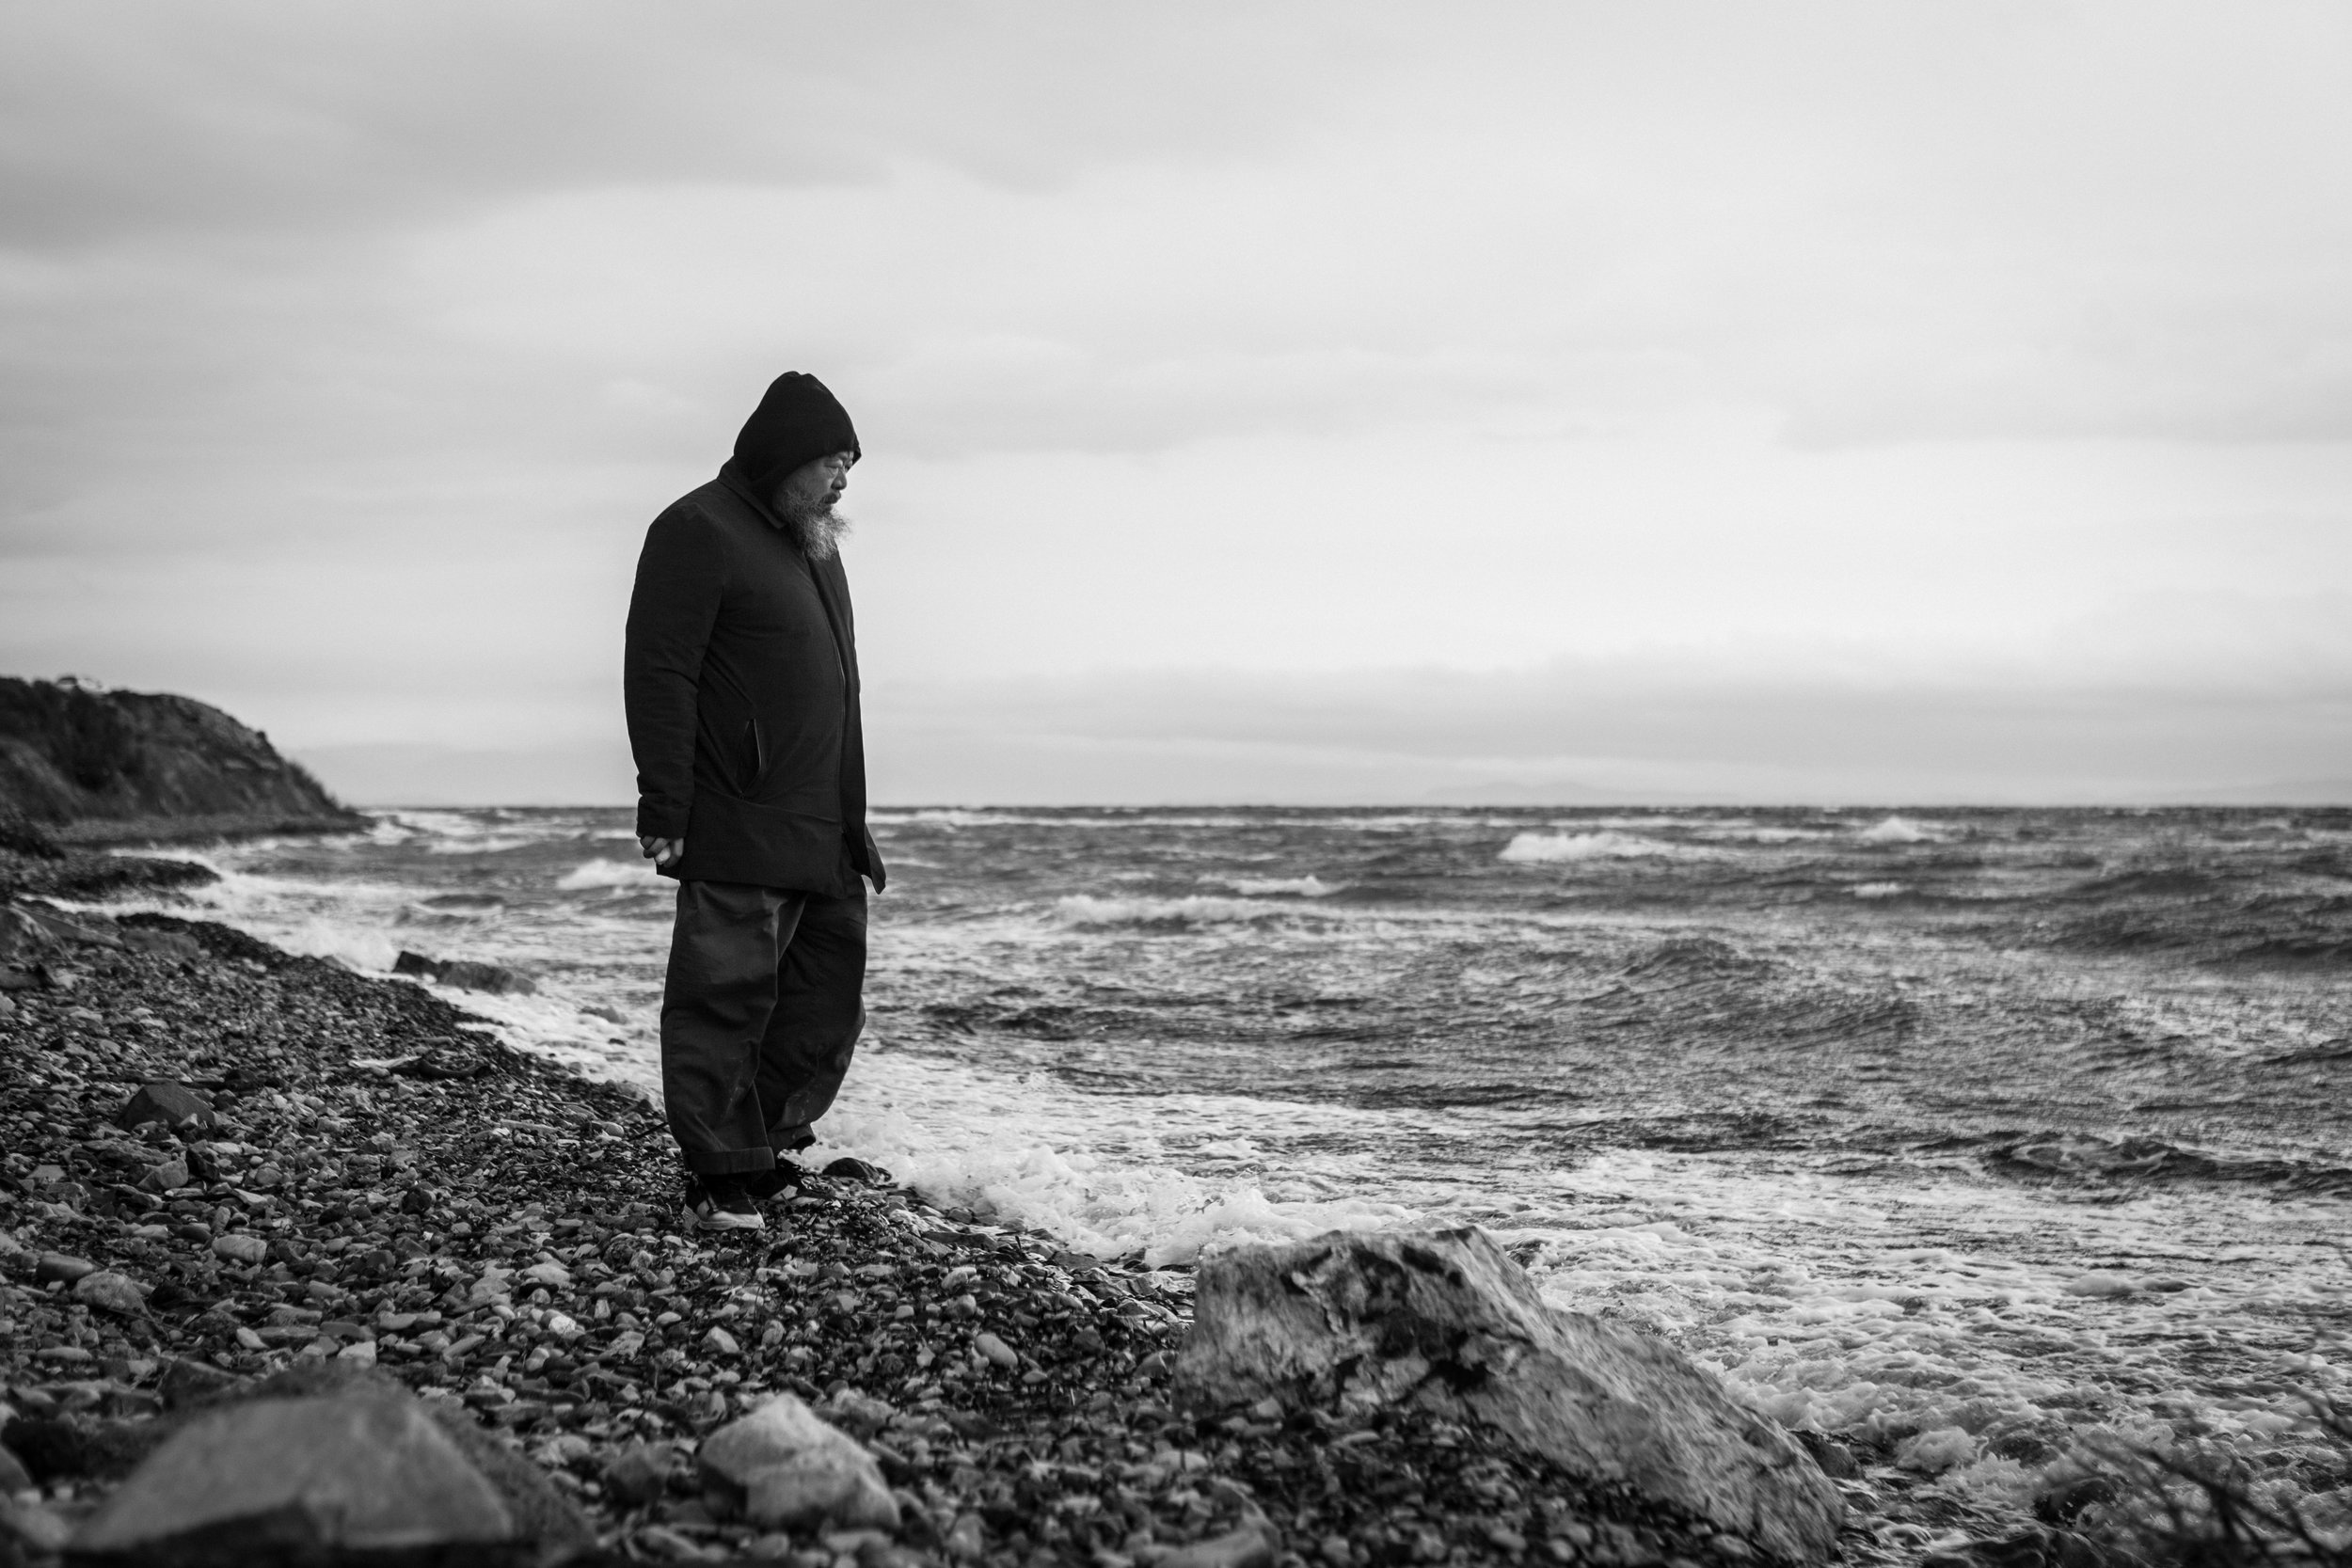 The artist on the coast of Lesvos, Greece, where refugees routinely float ashore